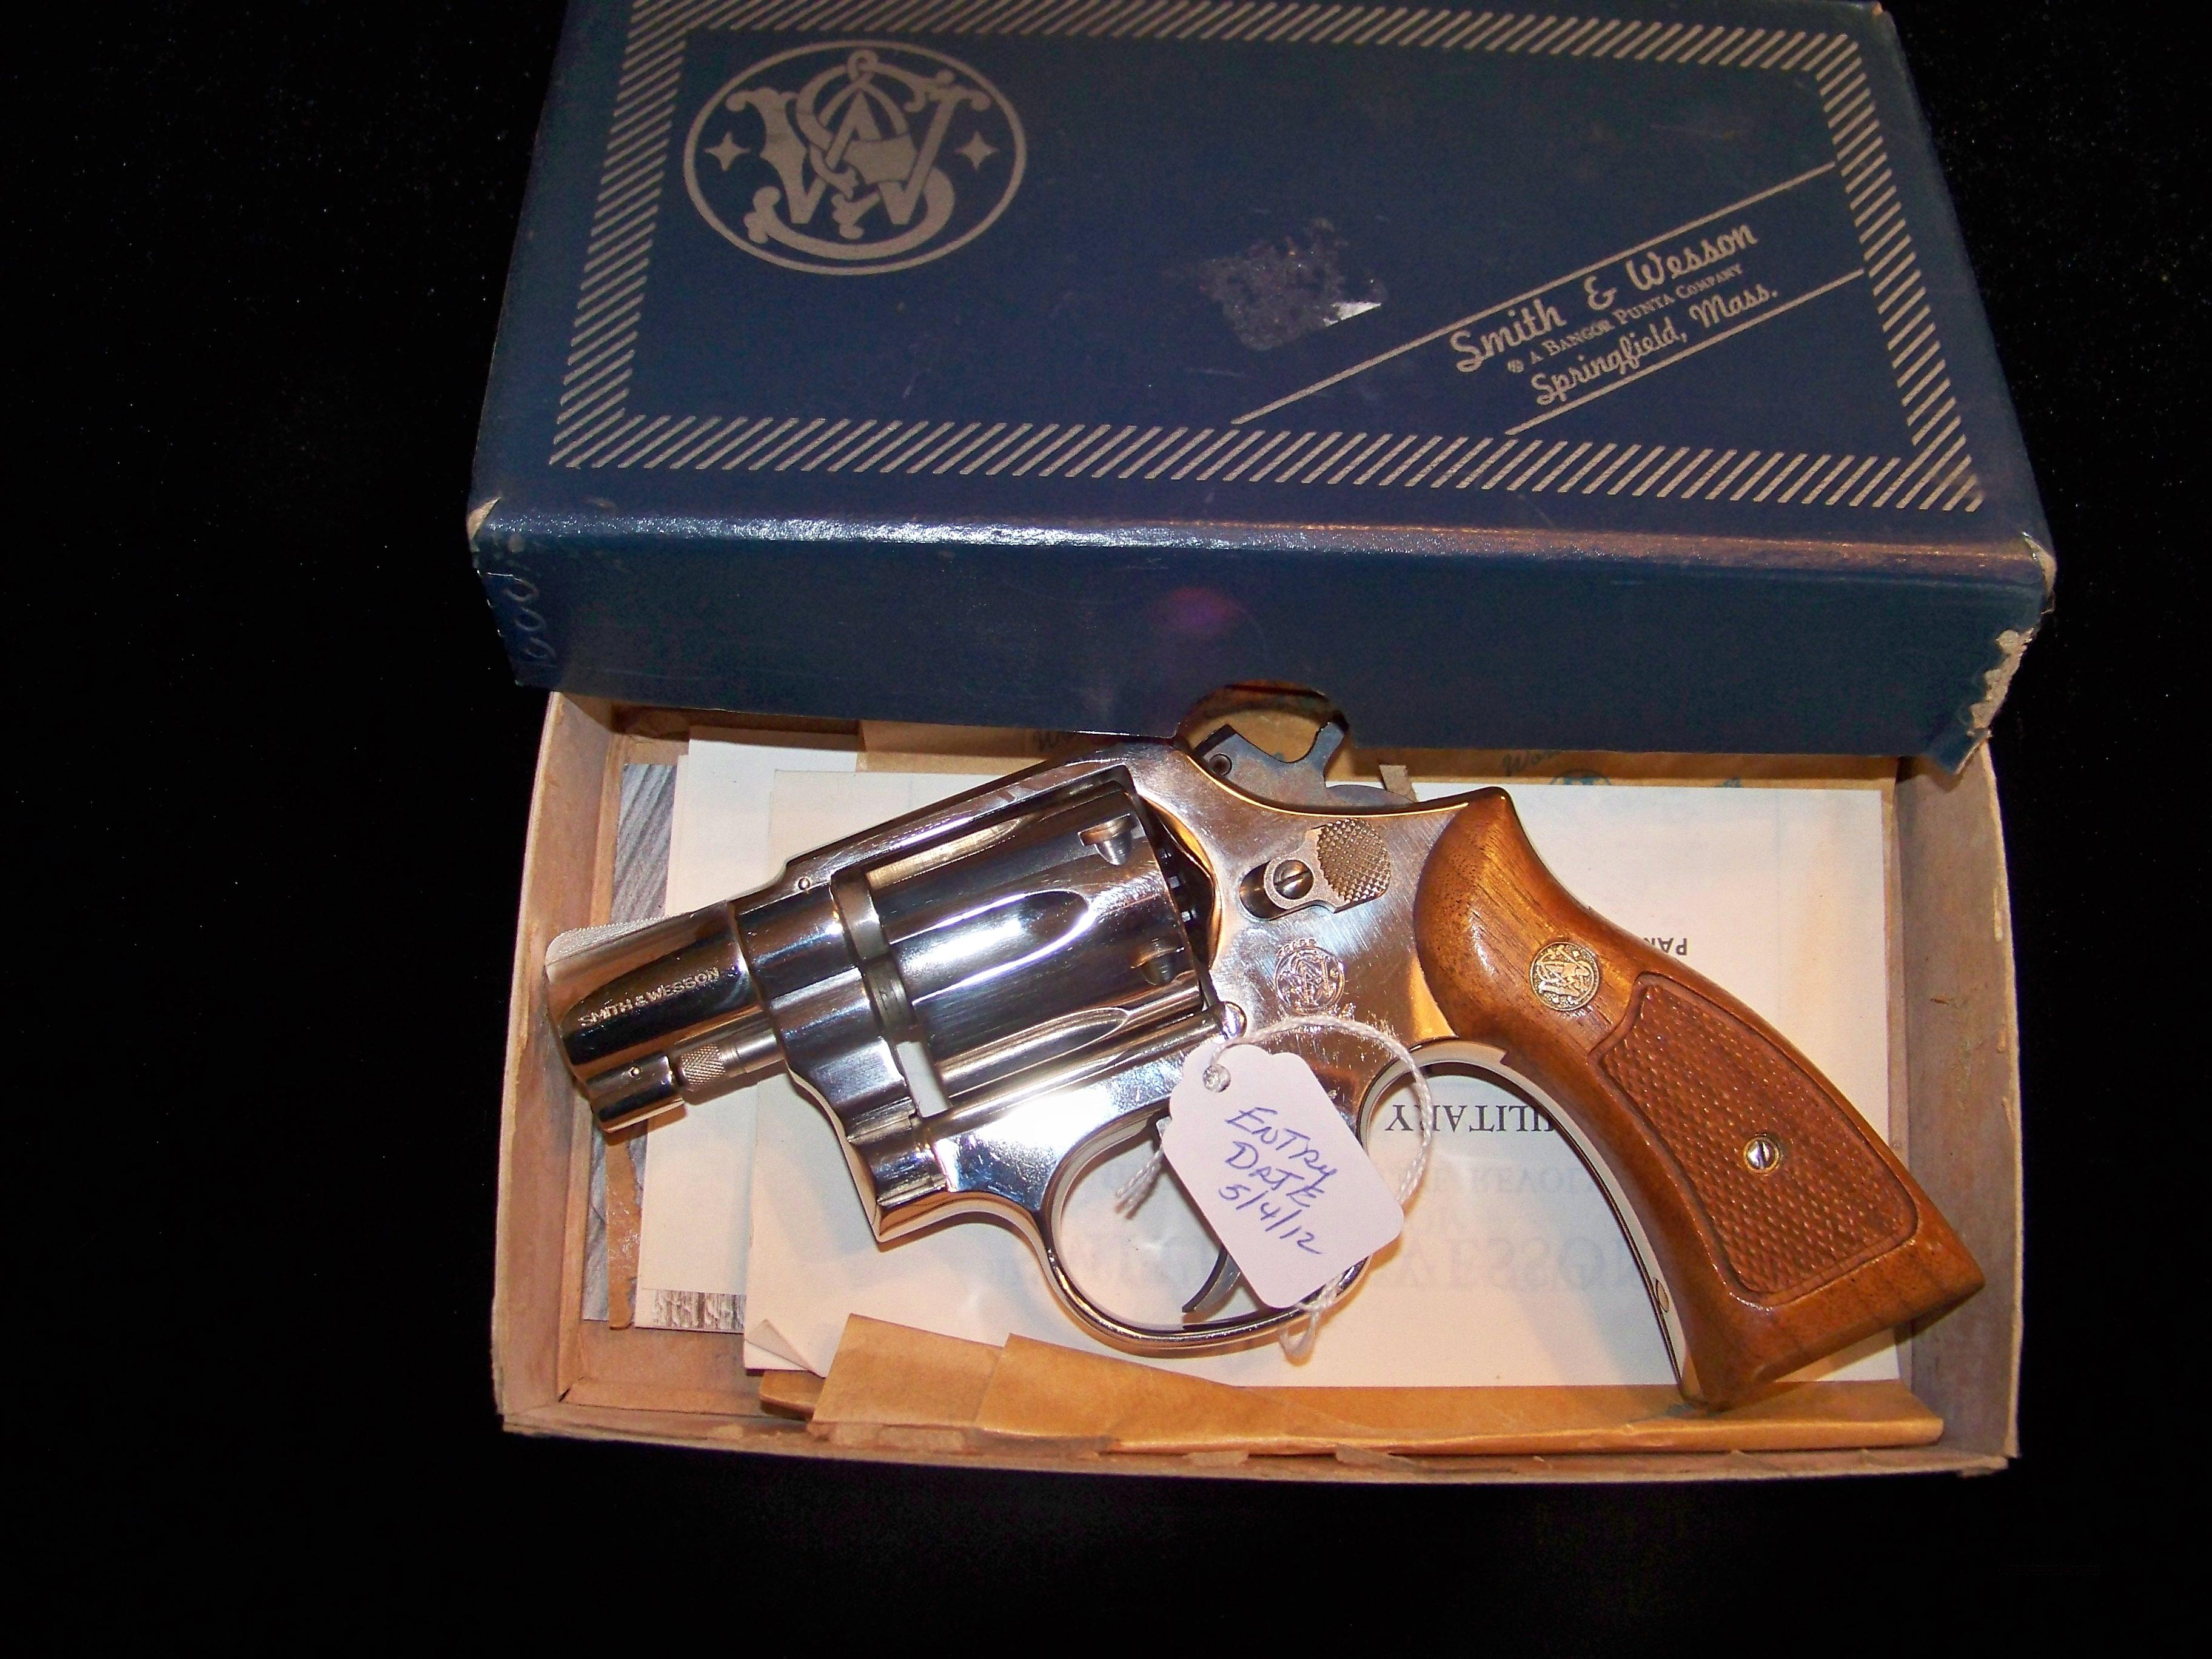 SMITH & WESSON MODEL 10 38 SPECIAL  Guns > Pistols > Smith & Wesson Revolvers > Model 10